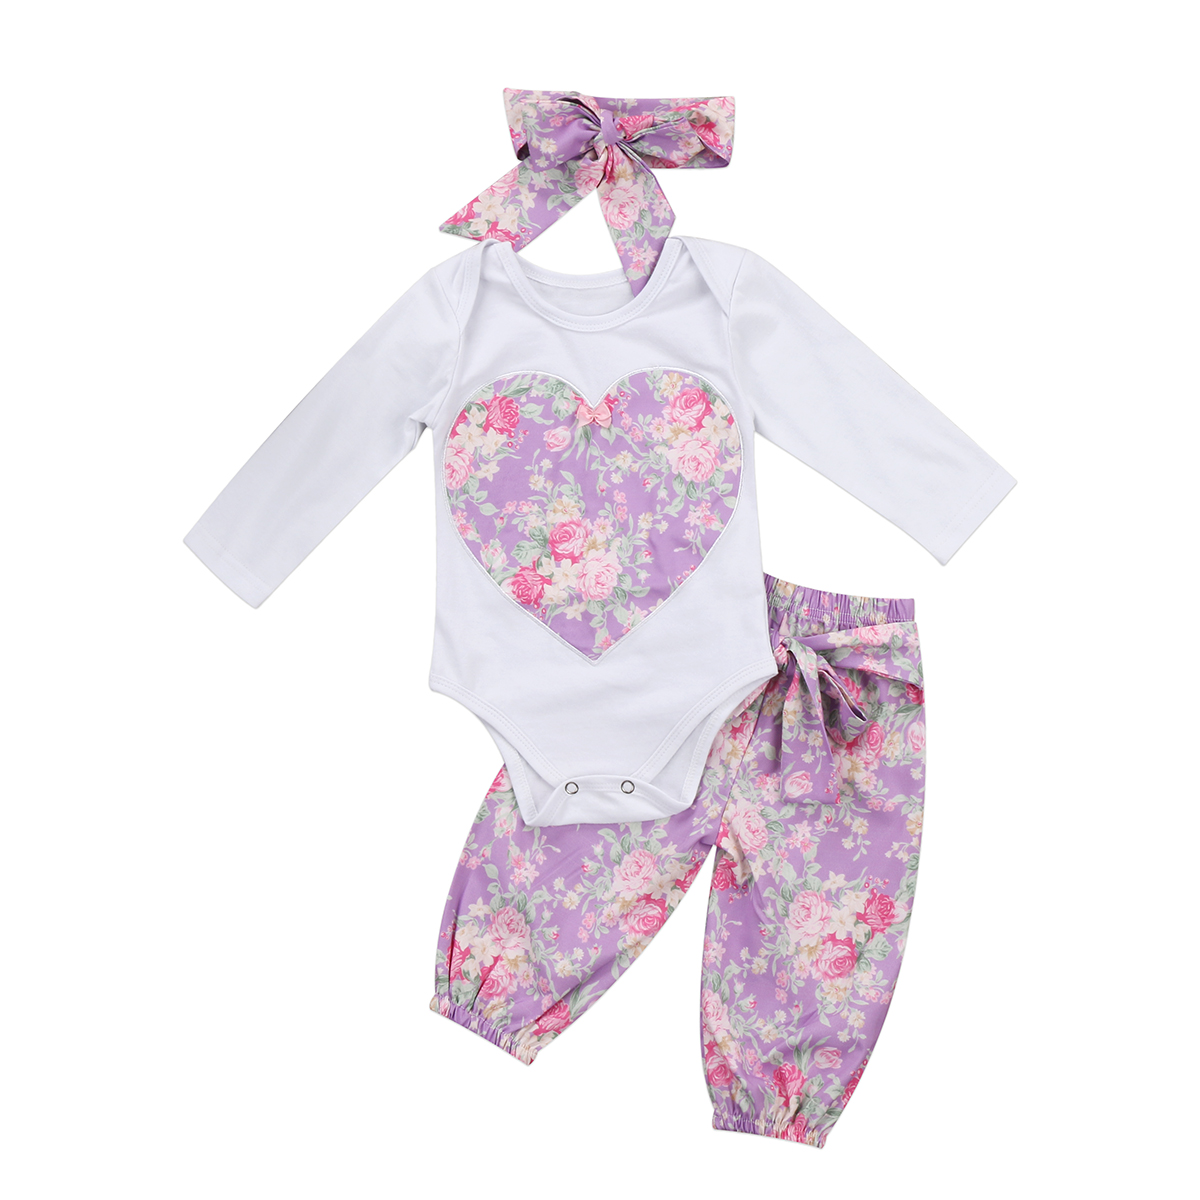 Baby Girl Long Sleeve T-shirt Tops Floral Cute Pants Casual Headbands 3pcs Clothing Set Baby Girls Autumn Clothes Sets Outfits 3 pcs set girls baby clothing sets sleeveless shirt tops floral pants headband vogue clothes 2 6 year hot selling